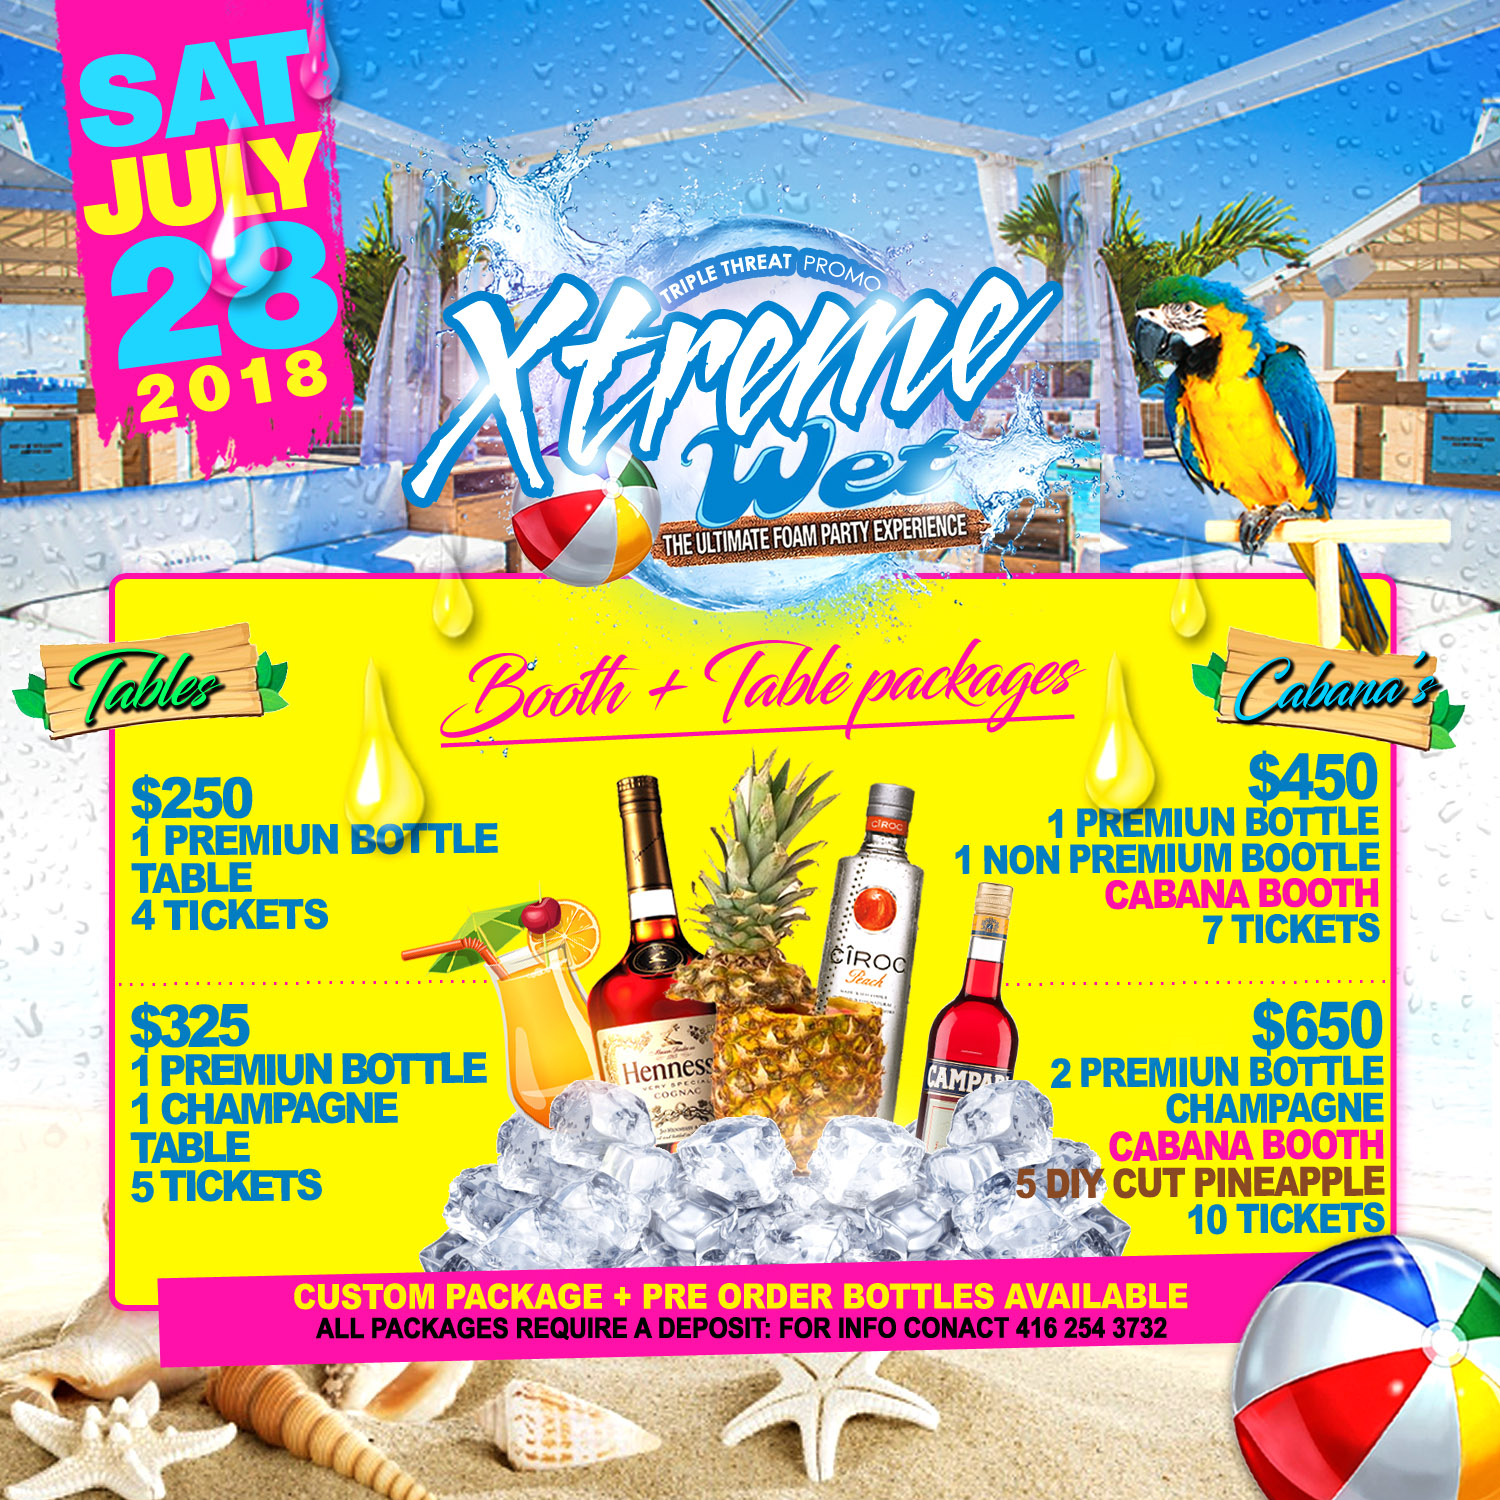 xtreme wet the ultimate foam party experience